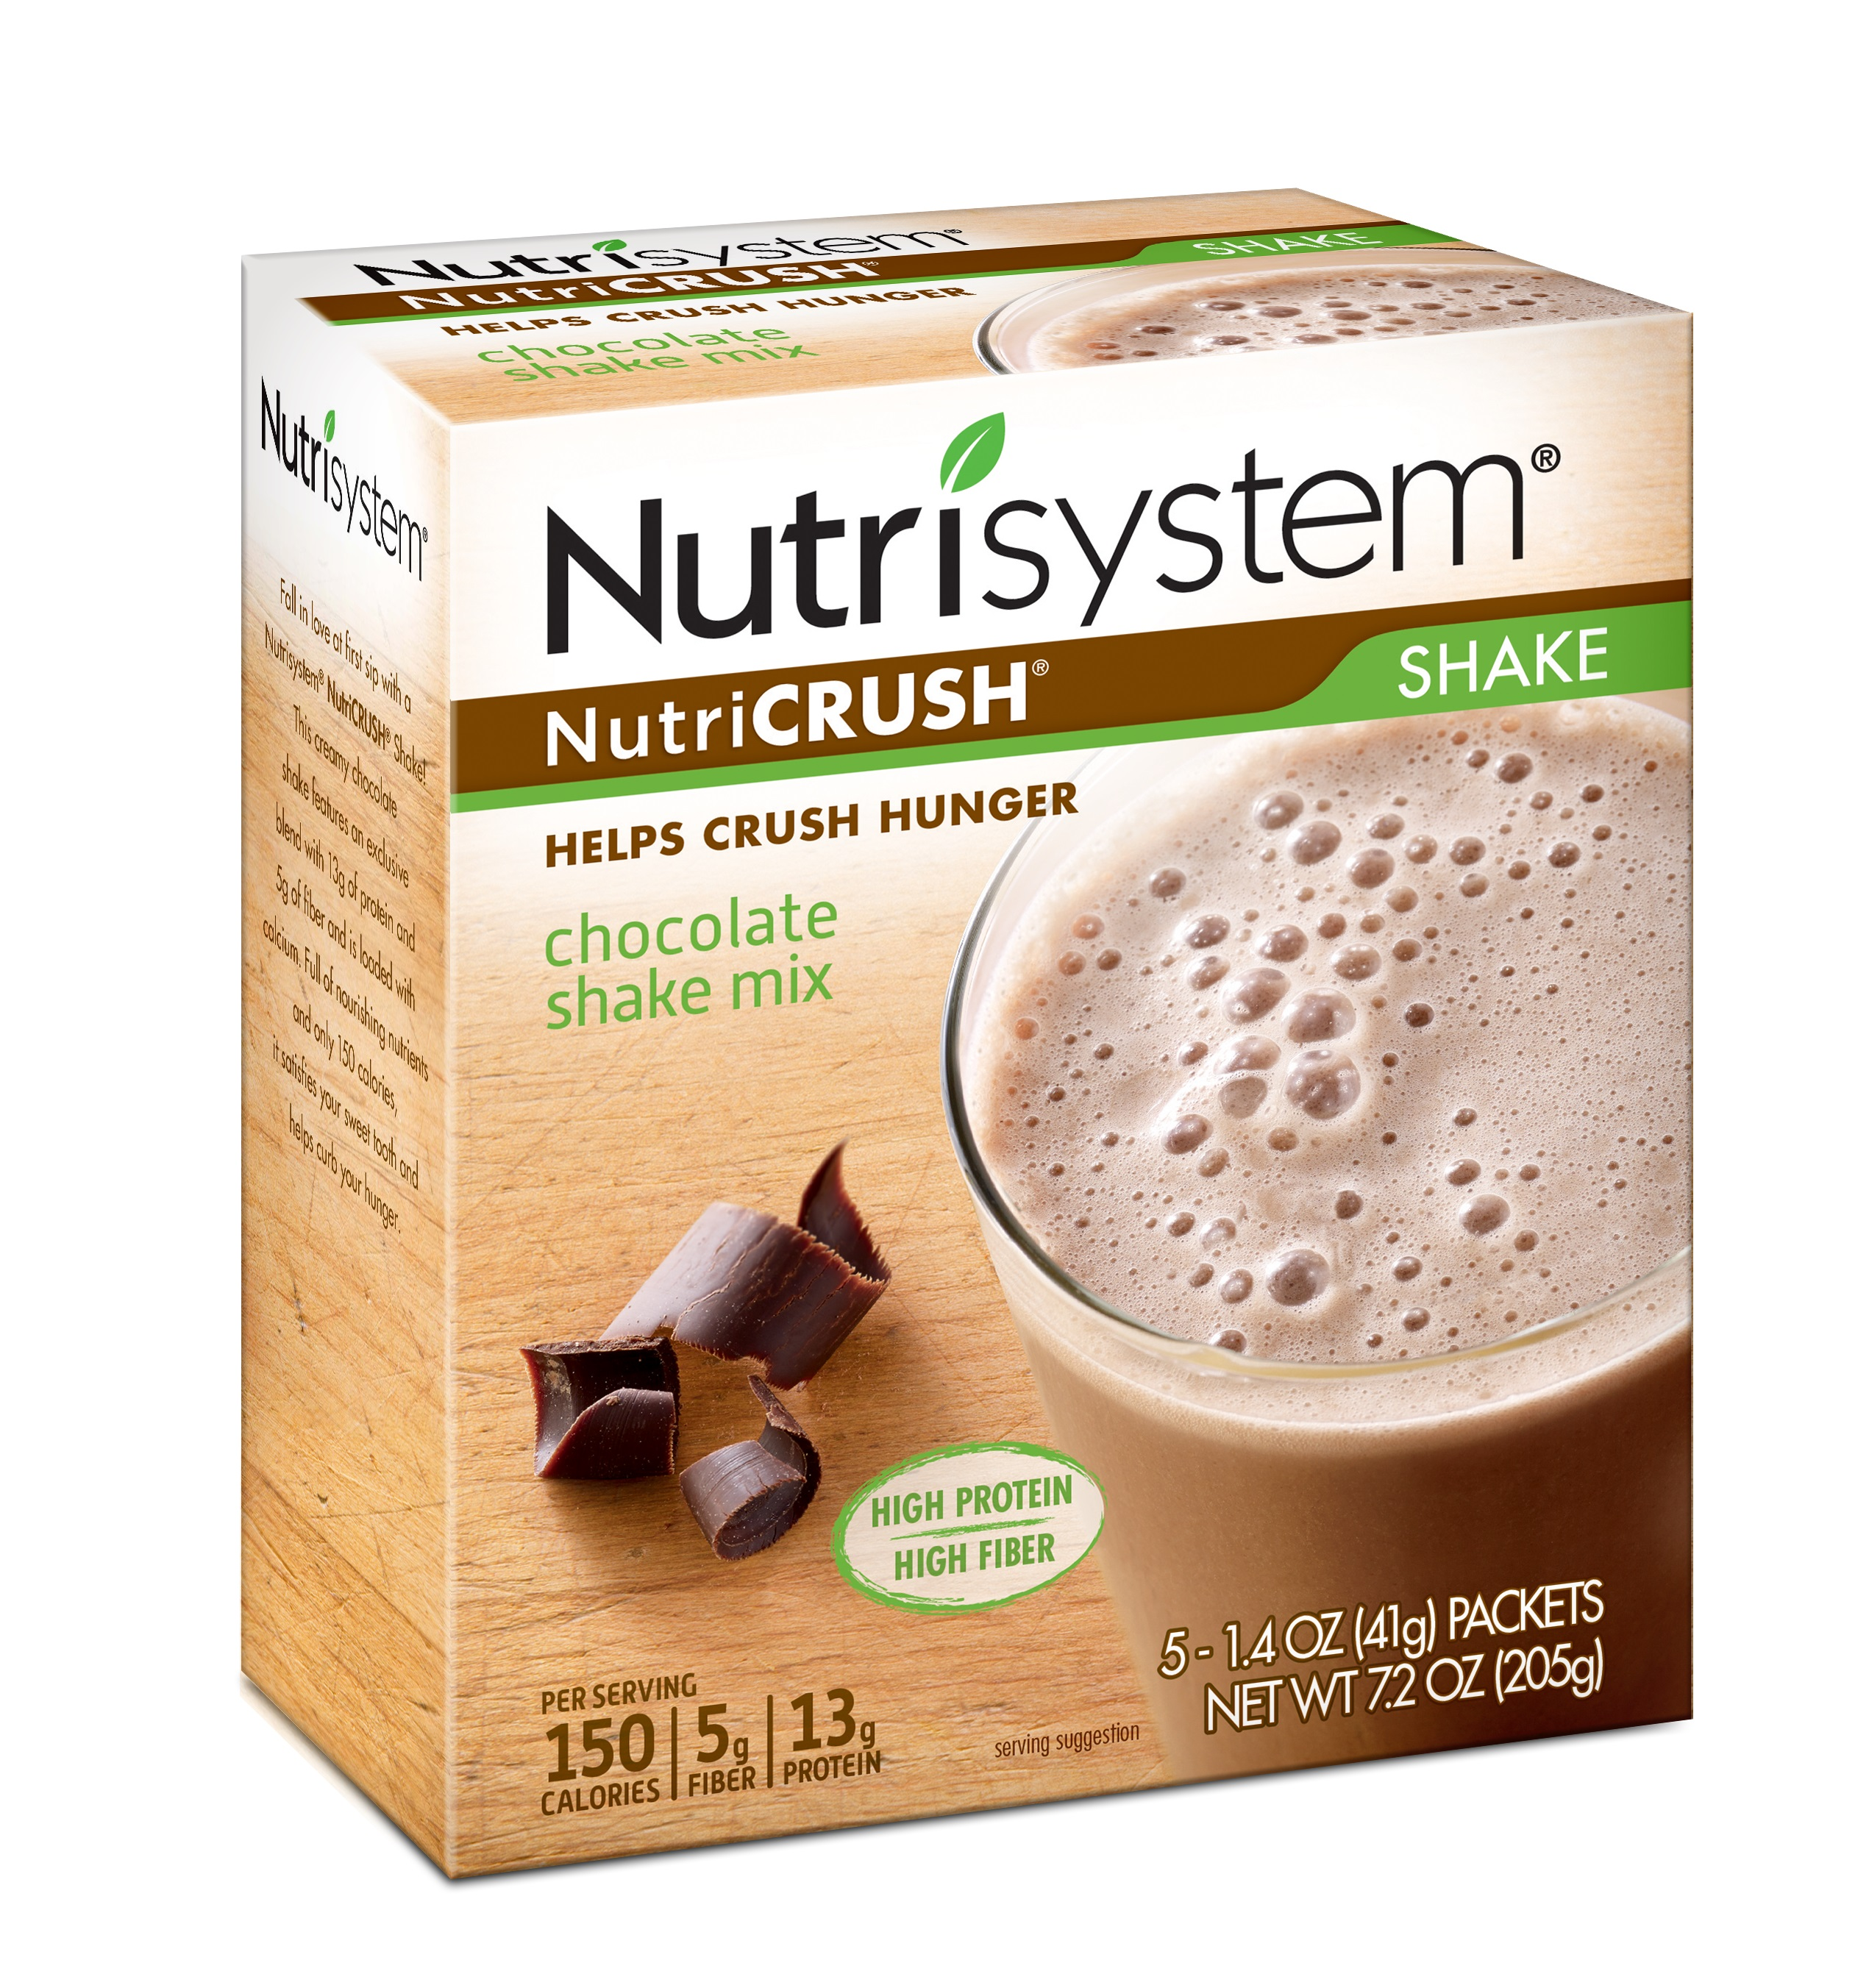 Nutrisystem NutriCrush Chocolate Shake Mix, 1.4 Oz, 20 Ct